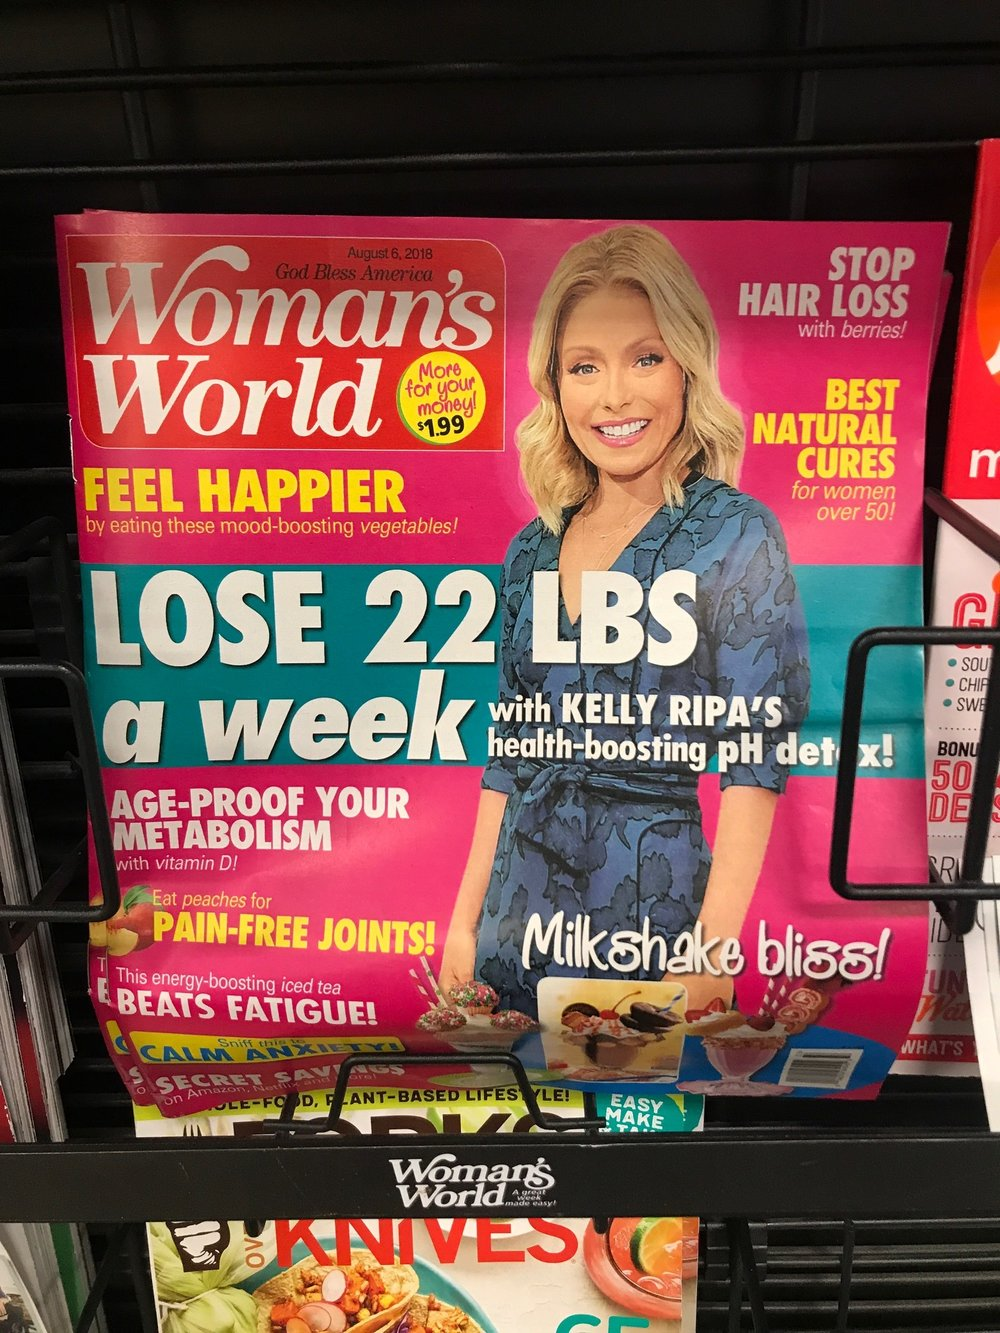 Losing 22lbs in a week is not a real thing. There is no way this is healthy, sustainable and realistic. Do not be fooled by these headlines!